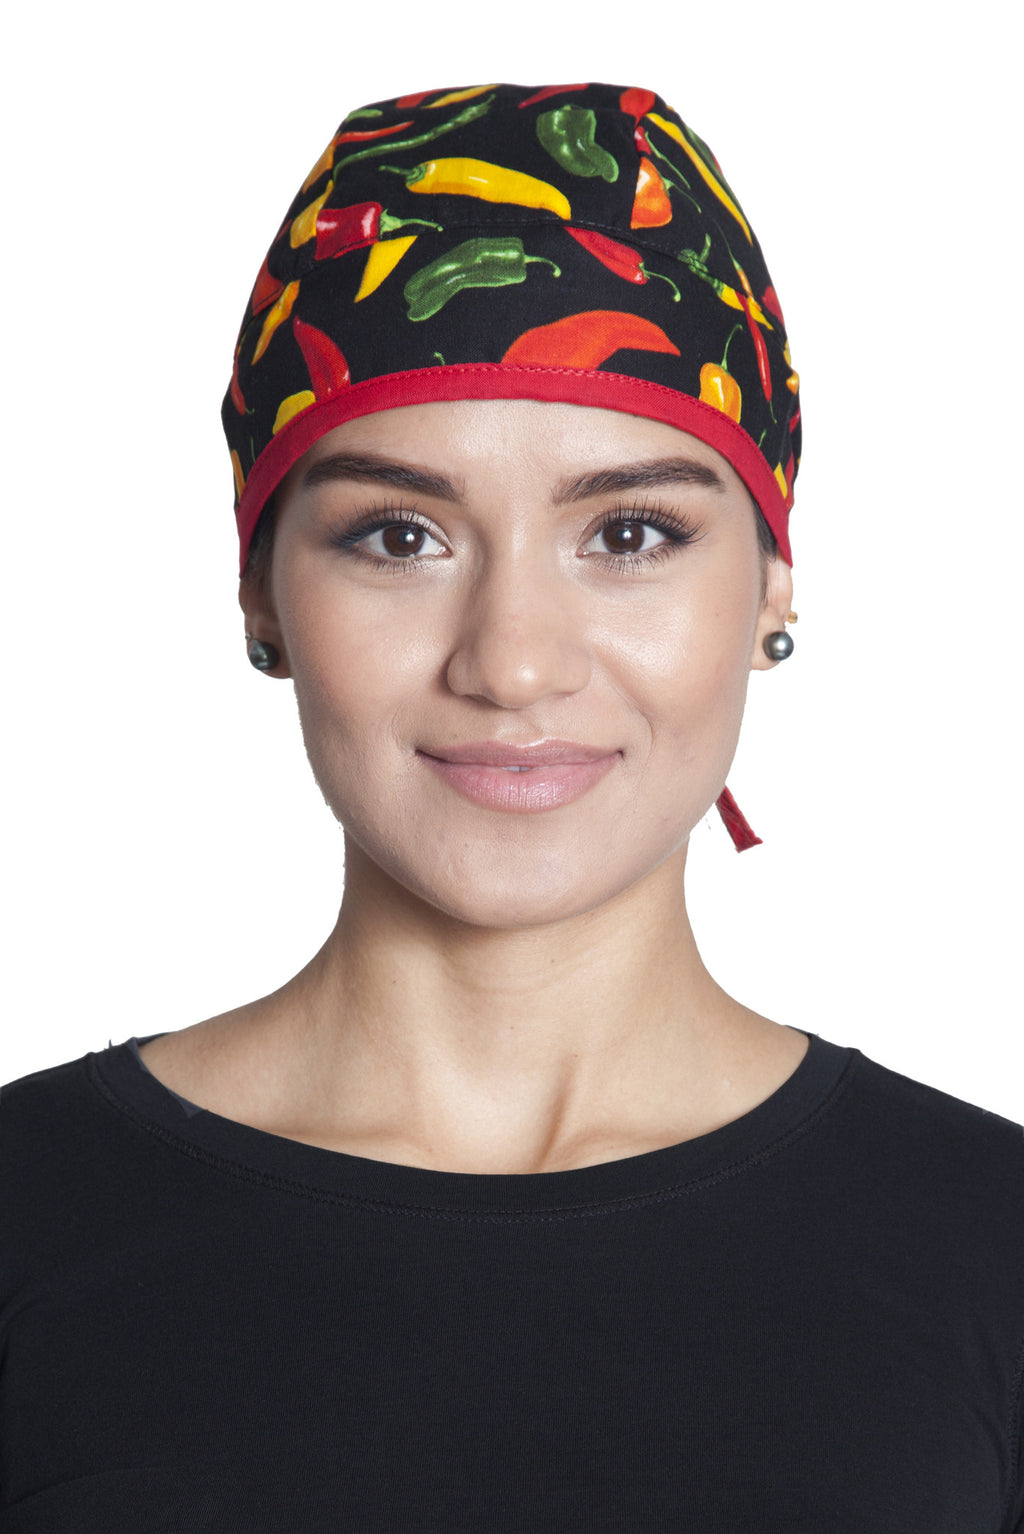 Fiumara Apparel Fitted Surgical Cap Chili Peppers Front with Ties